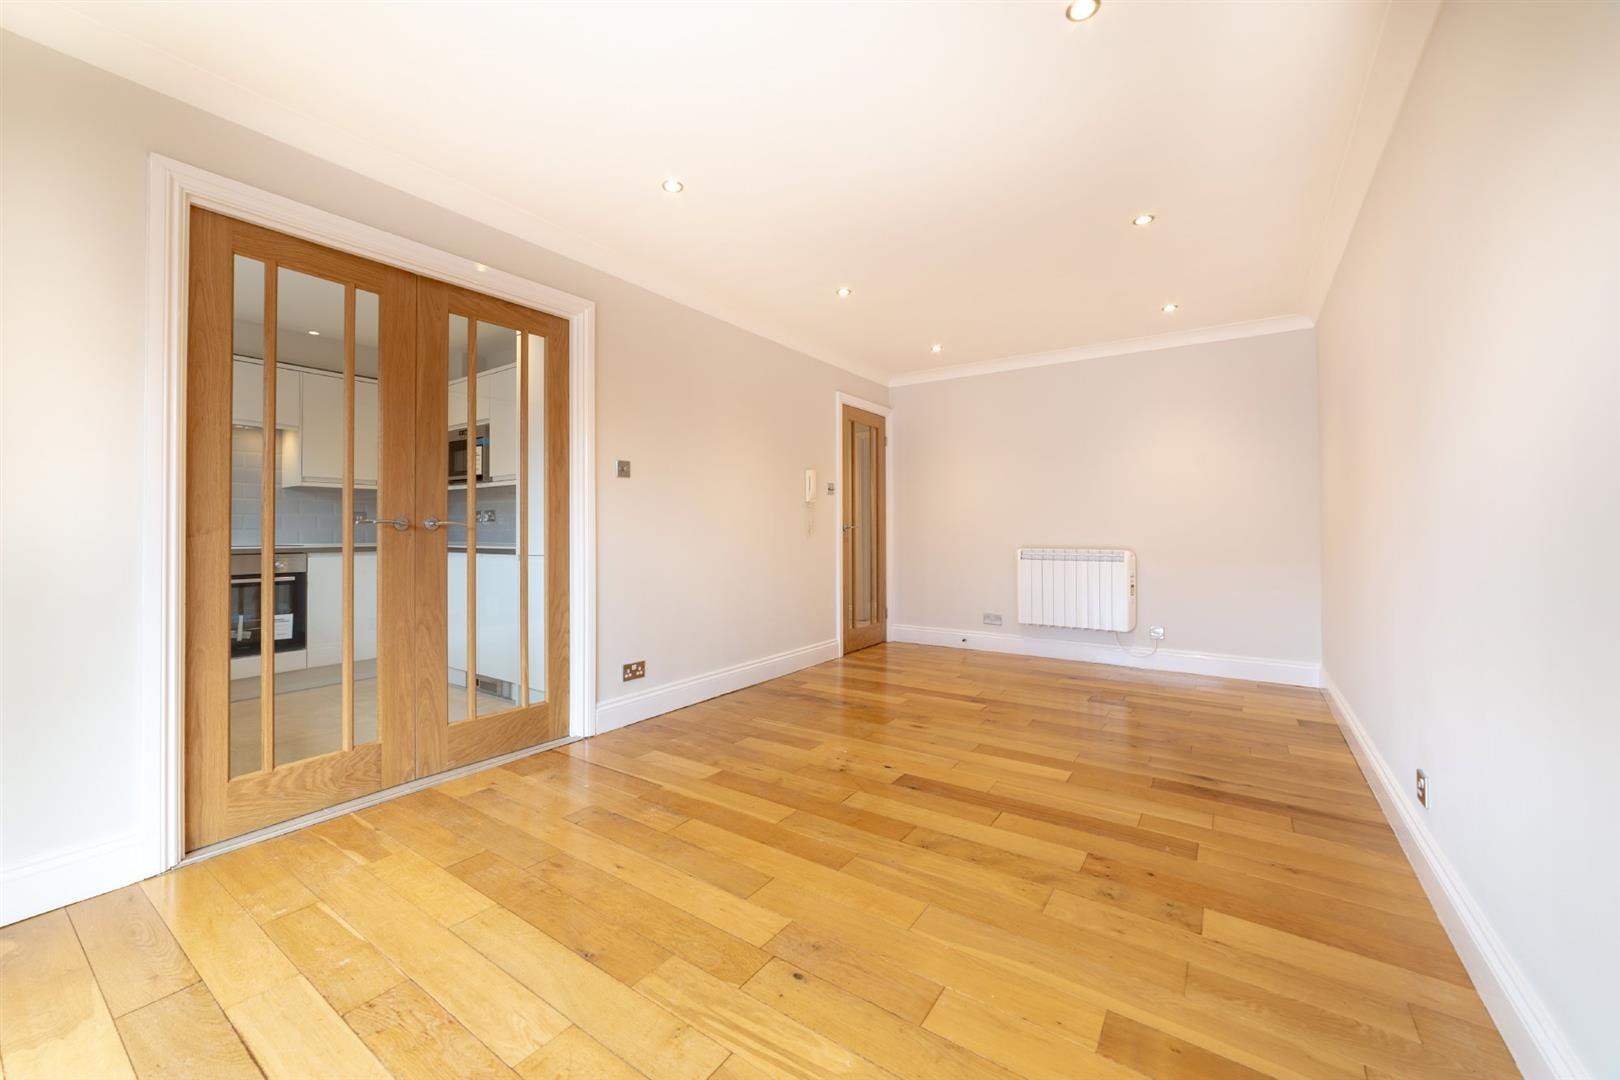 2 bed apartment to rent in Hawthorn Mews, Gosforth, NE3